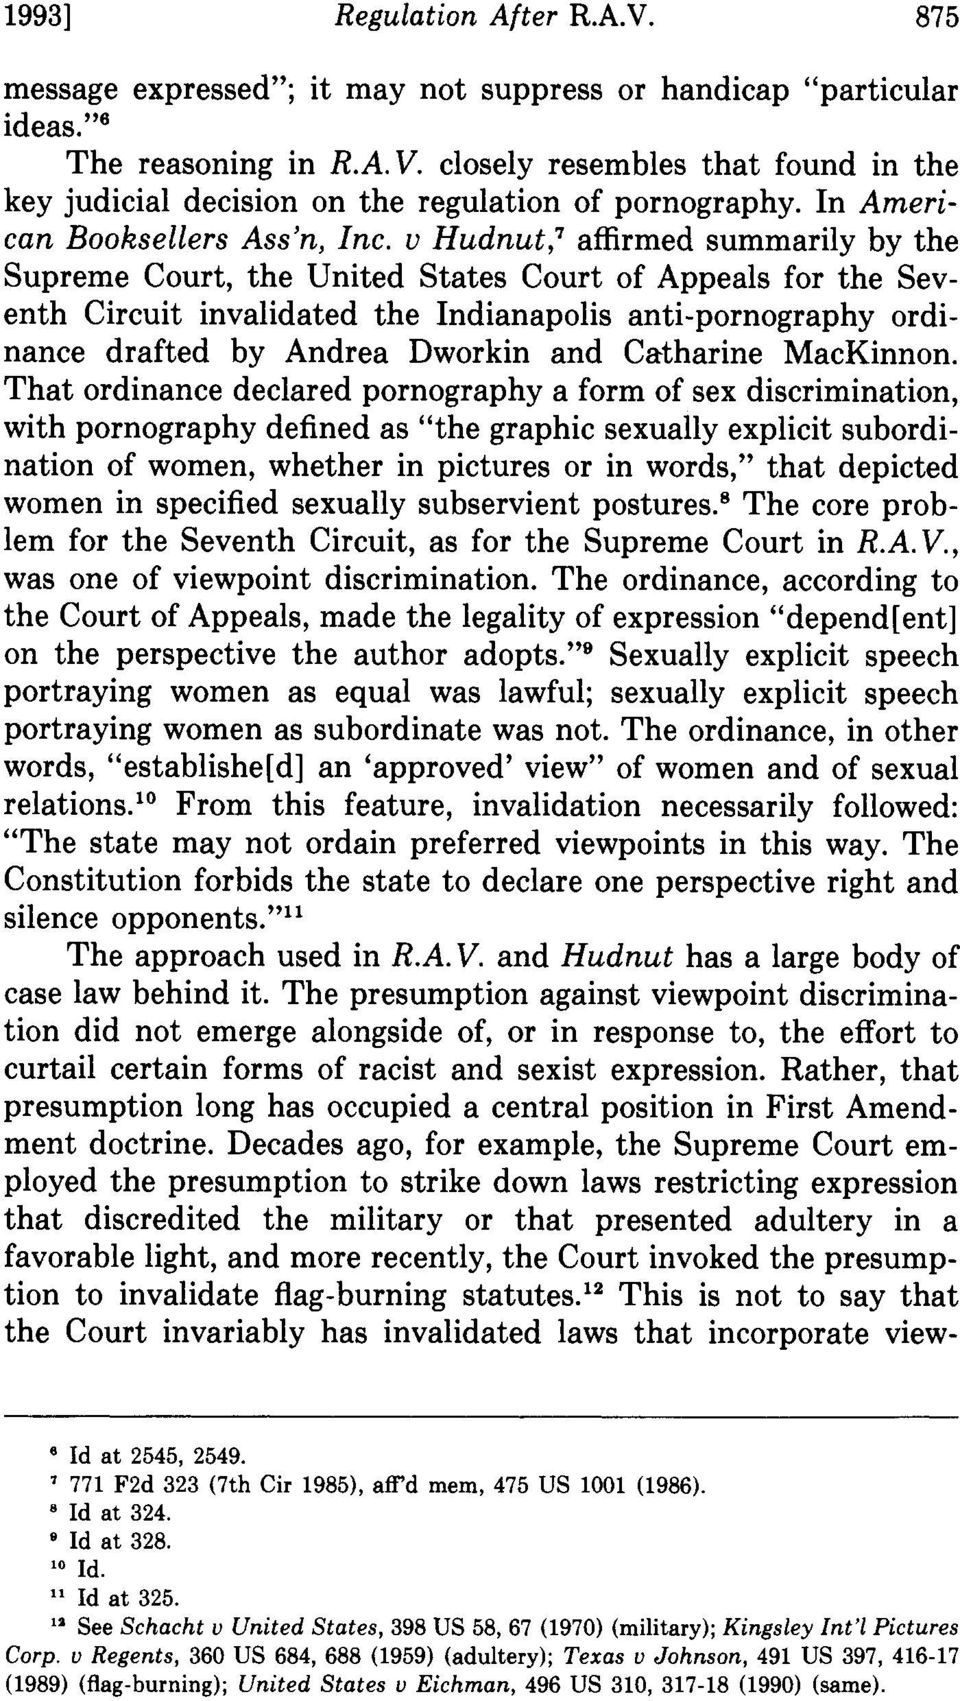 v Hudnut,7 affirmed summarily by the Supreme Court, the United States Court of Appeals for the Seventh Circuit invalidated the Indianapolis anti-pornography ordinance drafted by Andrea Dworkin and